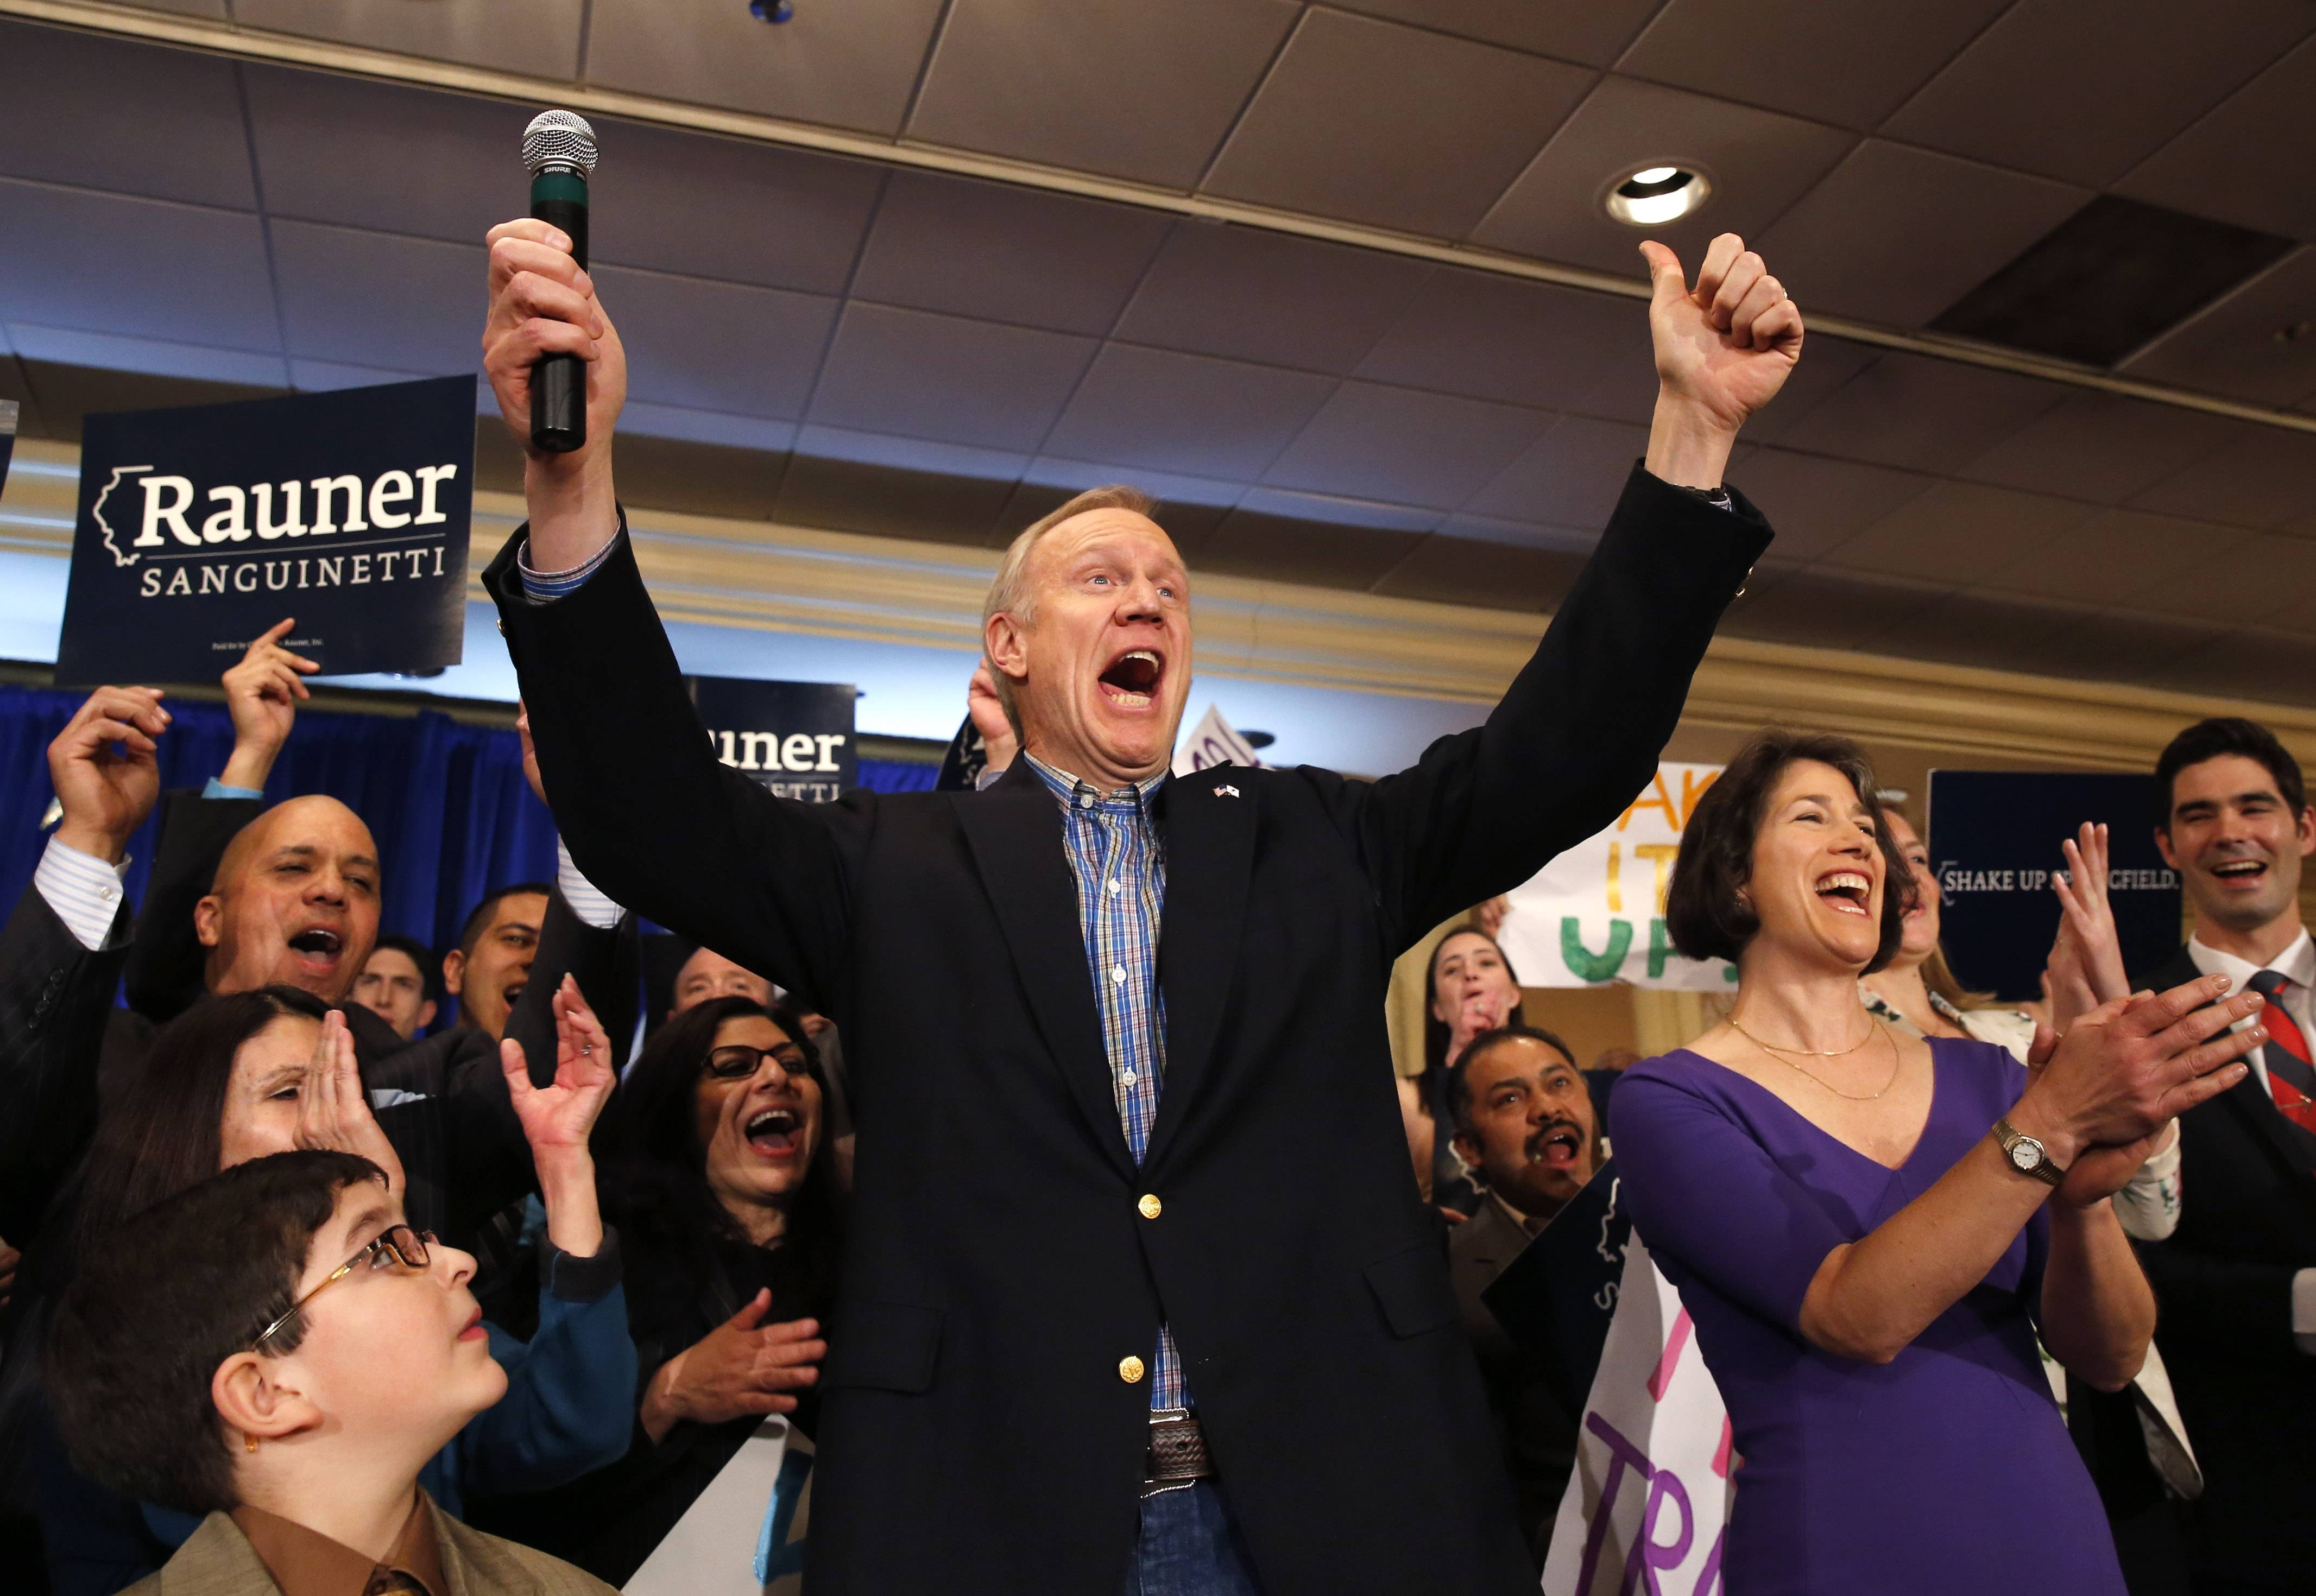 Rauner will be GOP nominee